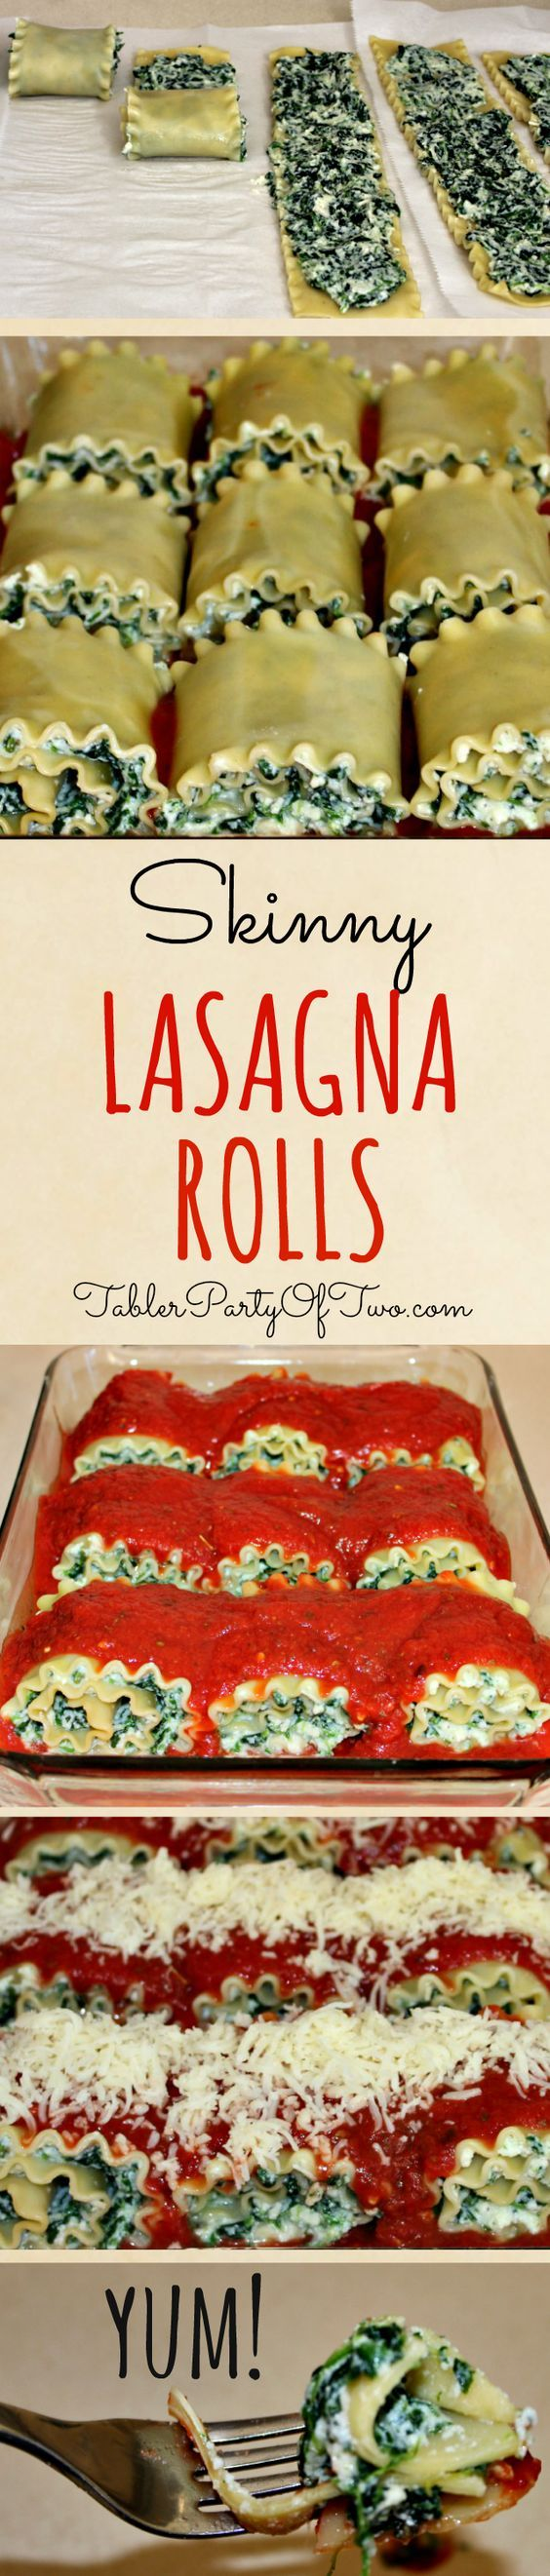 """These Skinny Lasagna Rolls are really easy to make and are a """"no-guilt"""" way to…"""